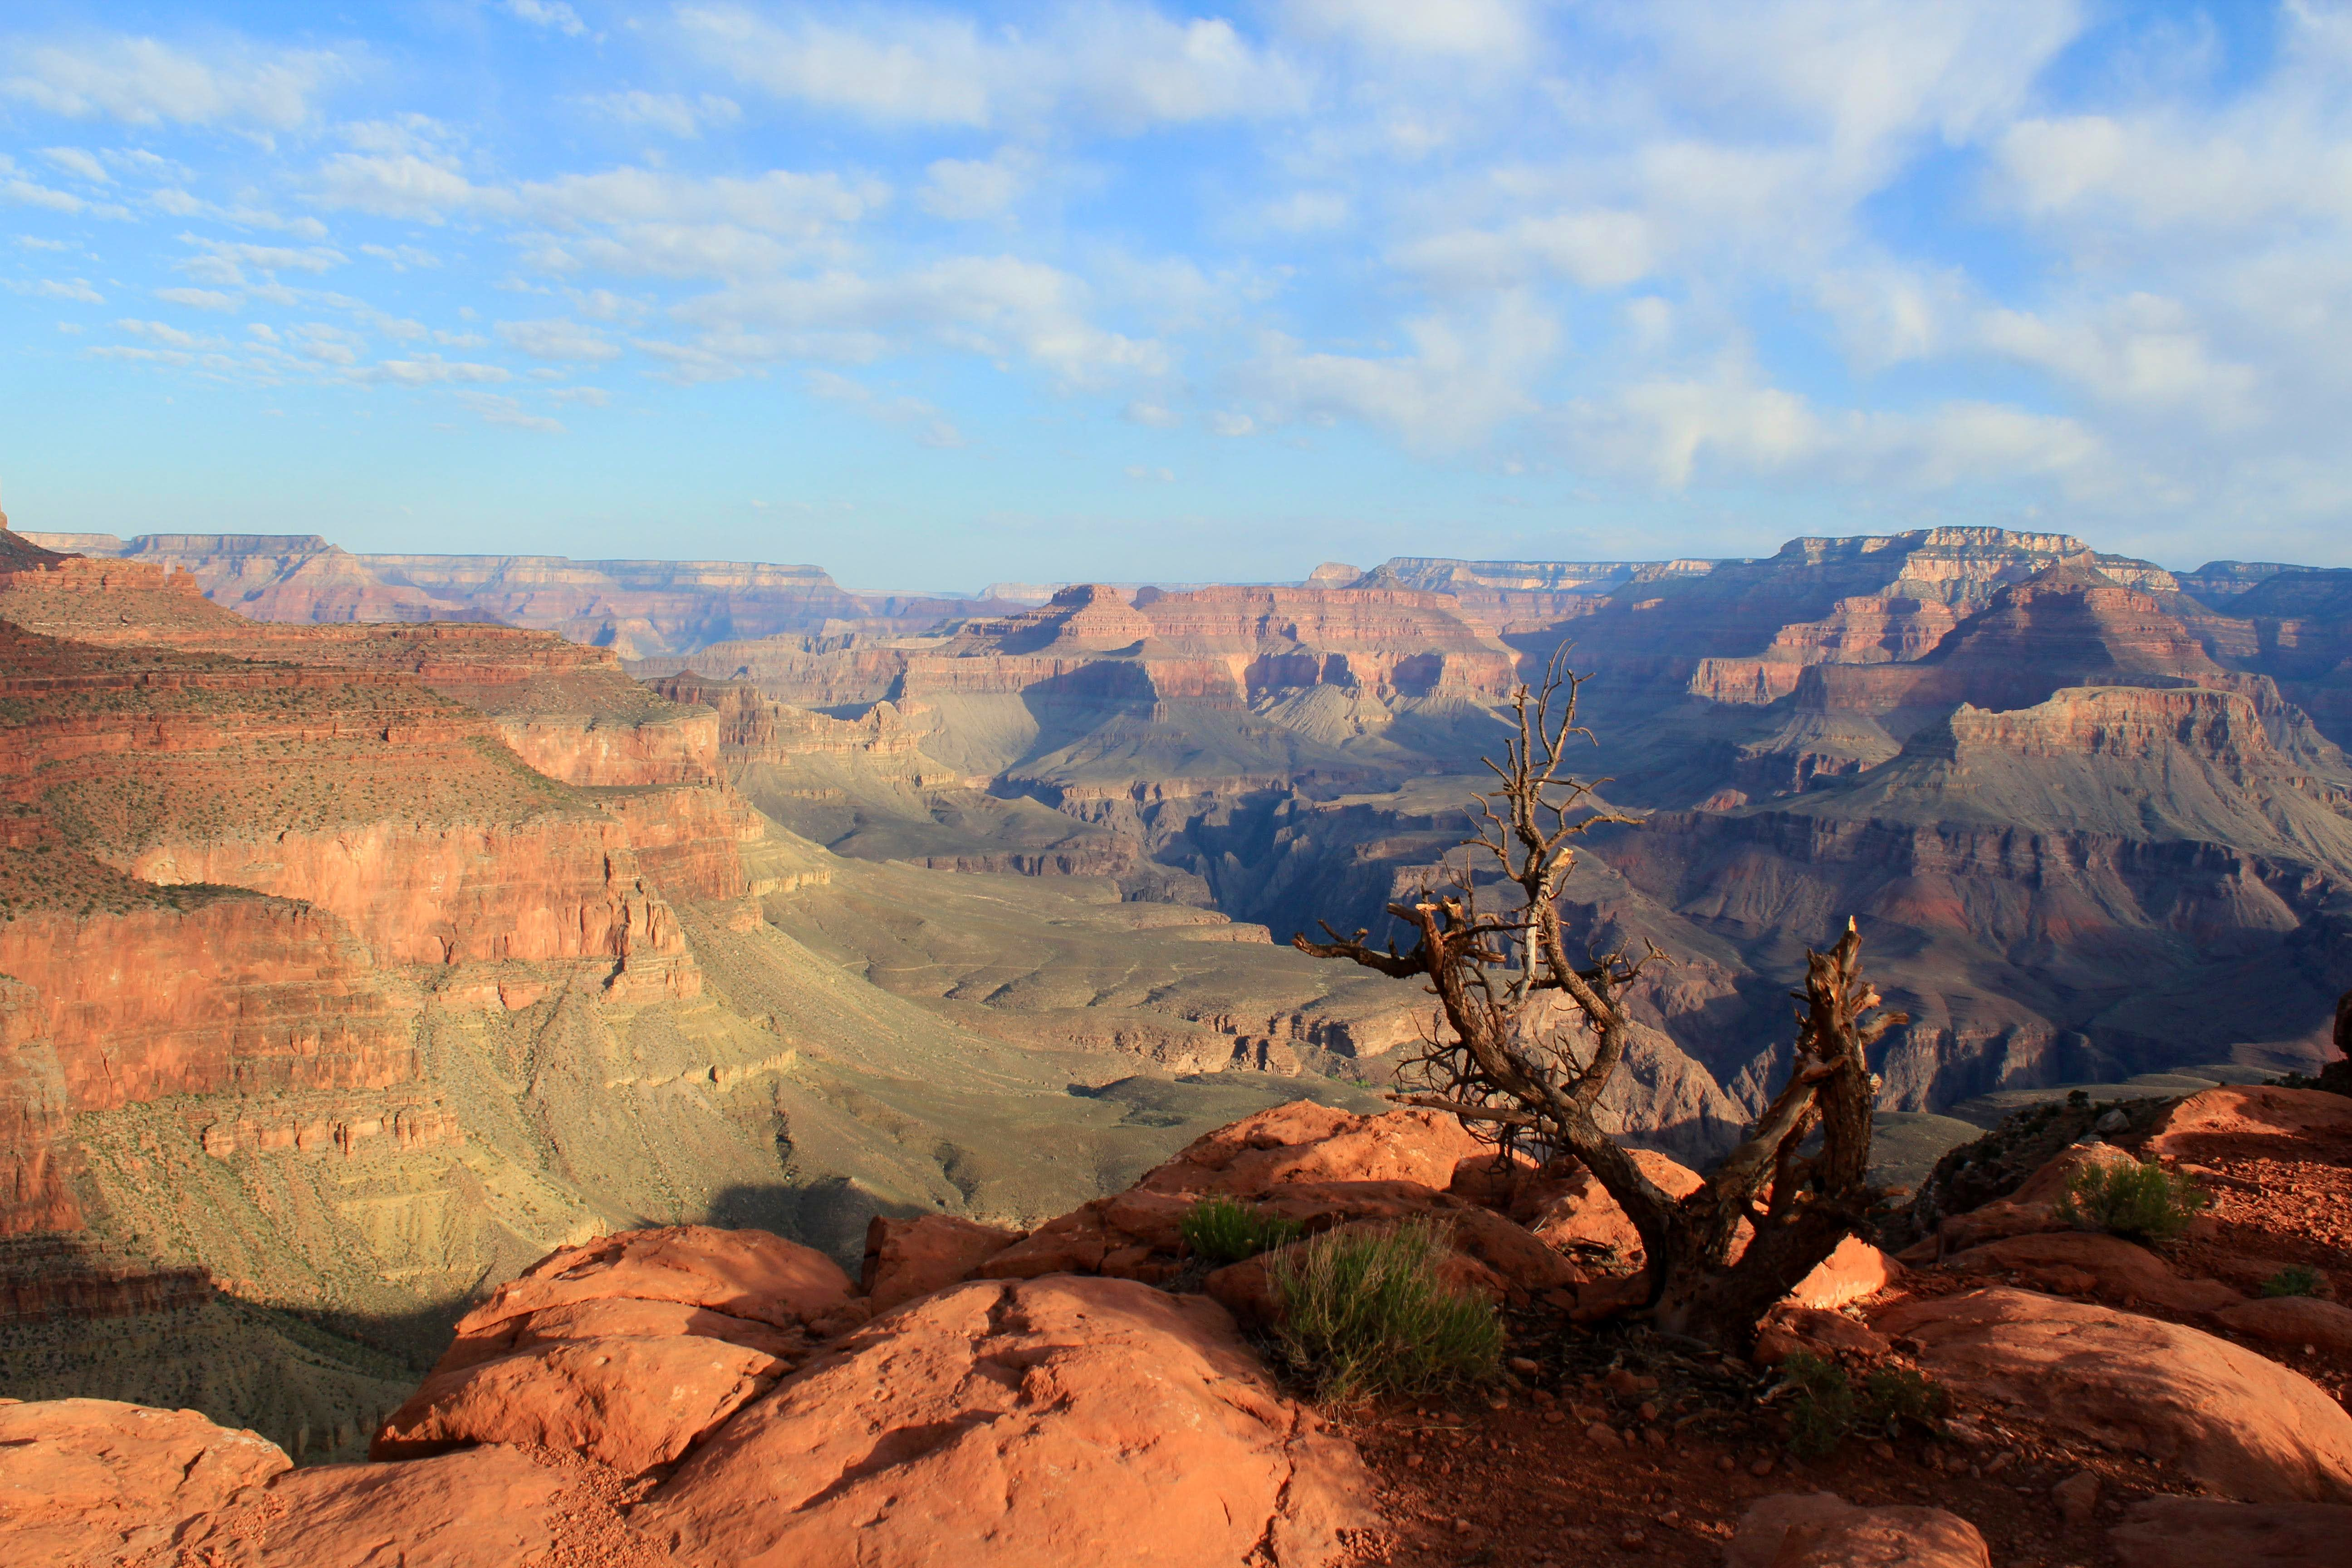 Grand Canyon—a Good Rim to Rim to Rim (R2R2R) Backpacking Plan